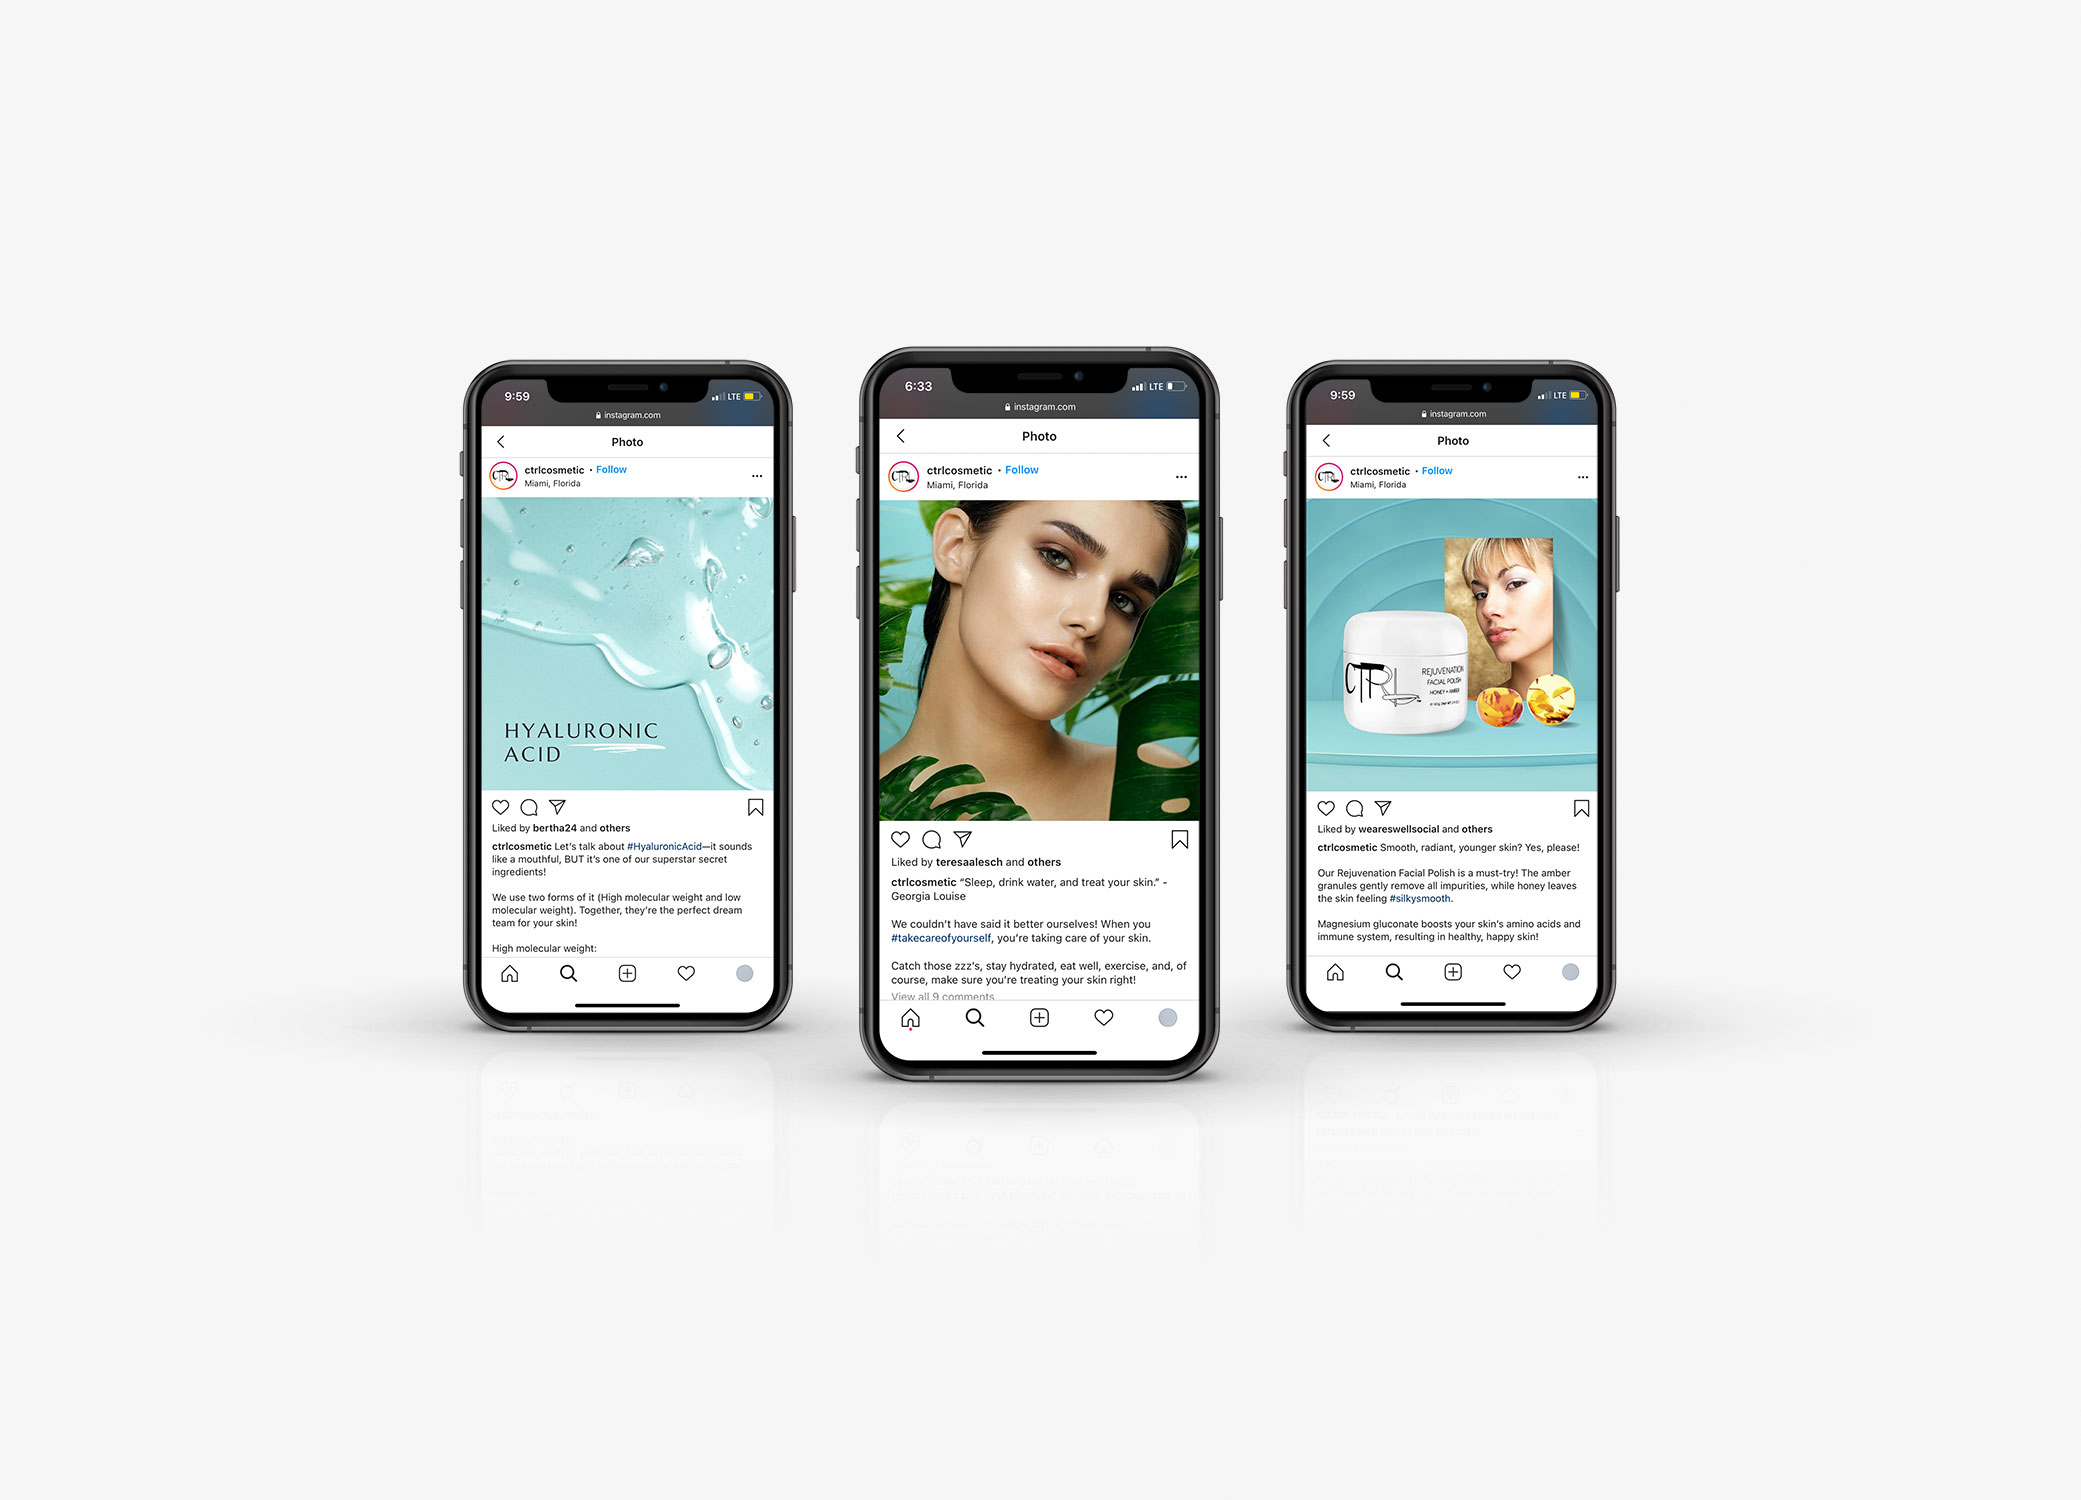 CTRL Cosmetics social media images placed in iPhone mockup.